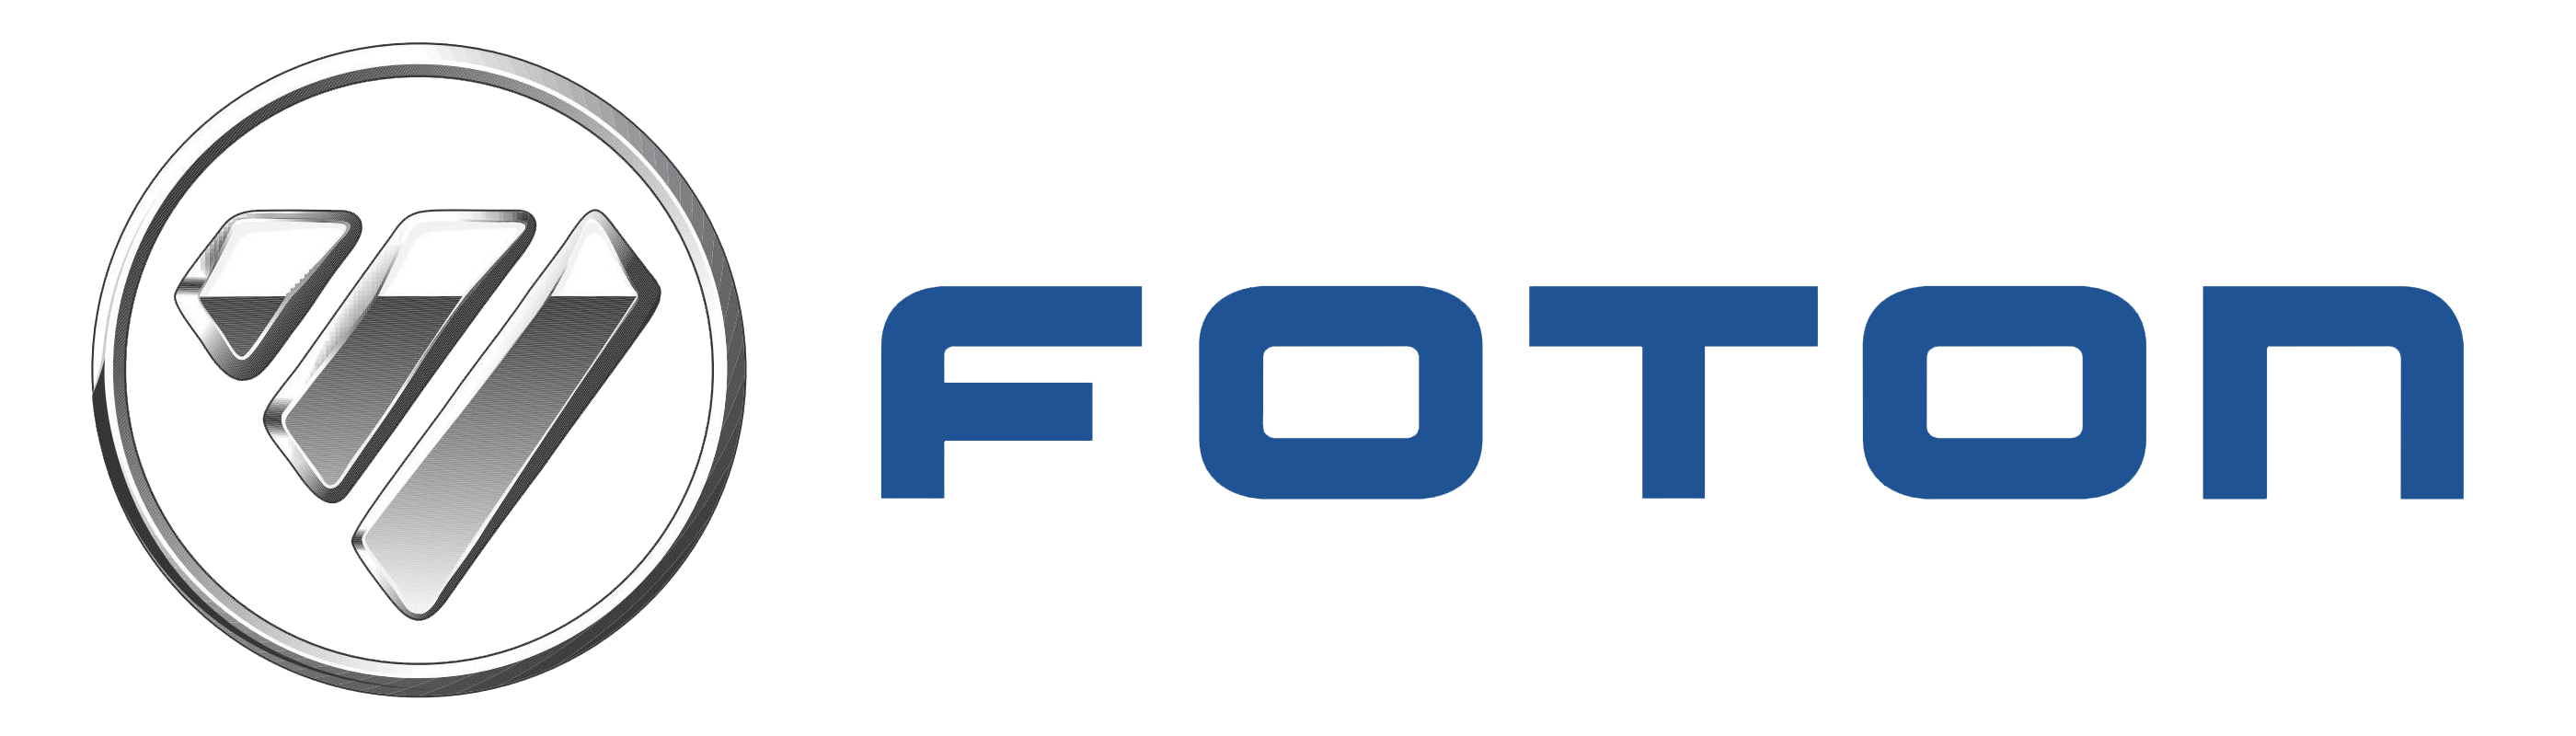 Foton Logo Hd Png Meaning Information